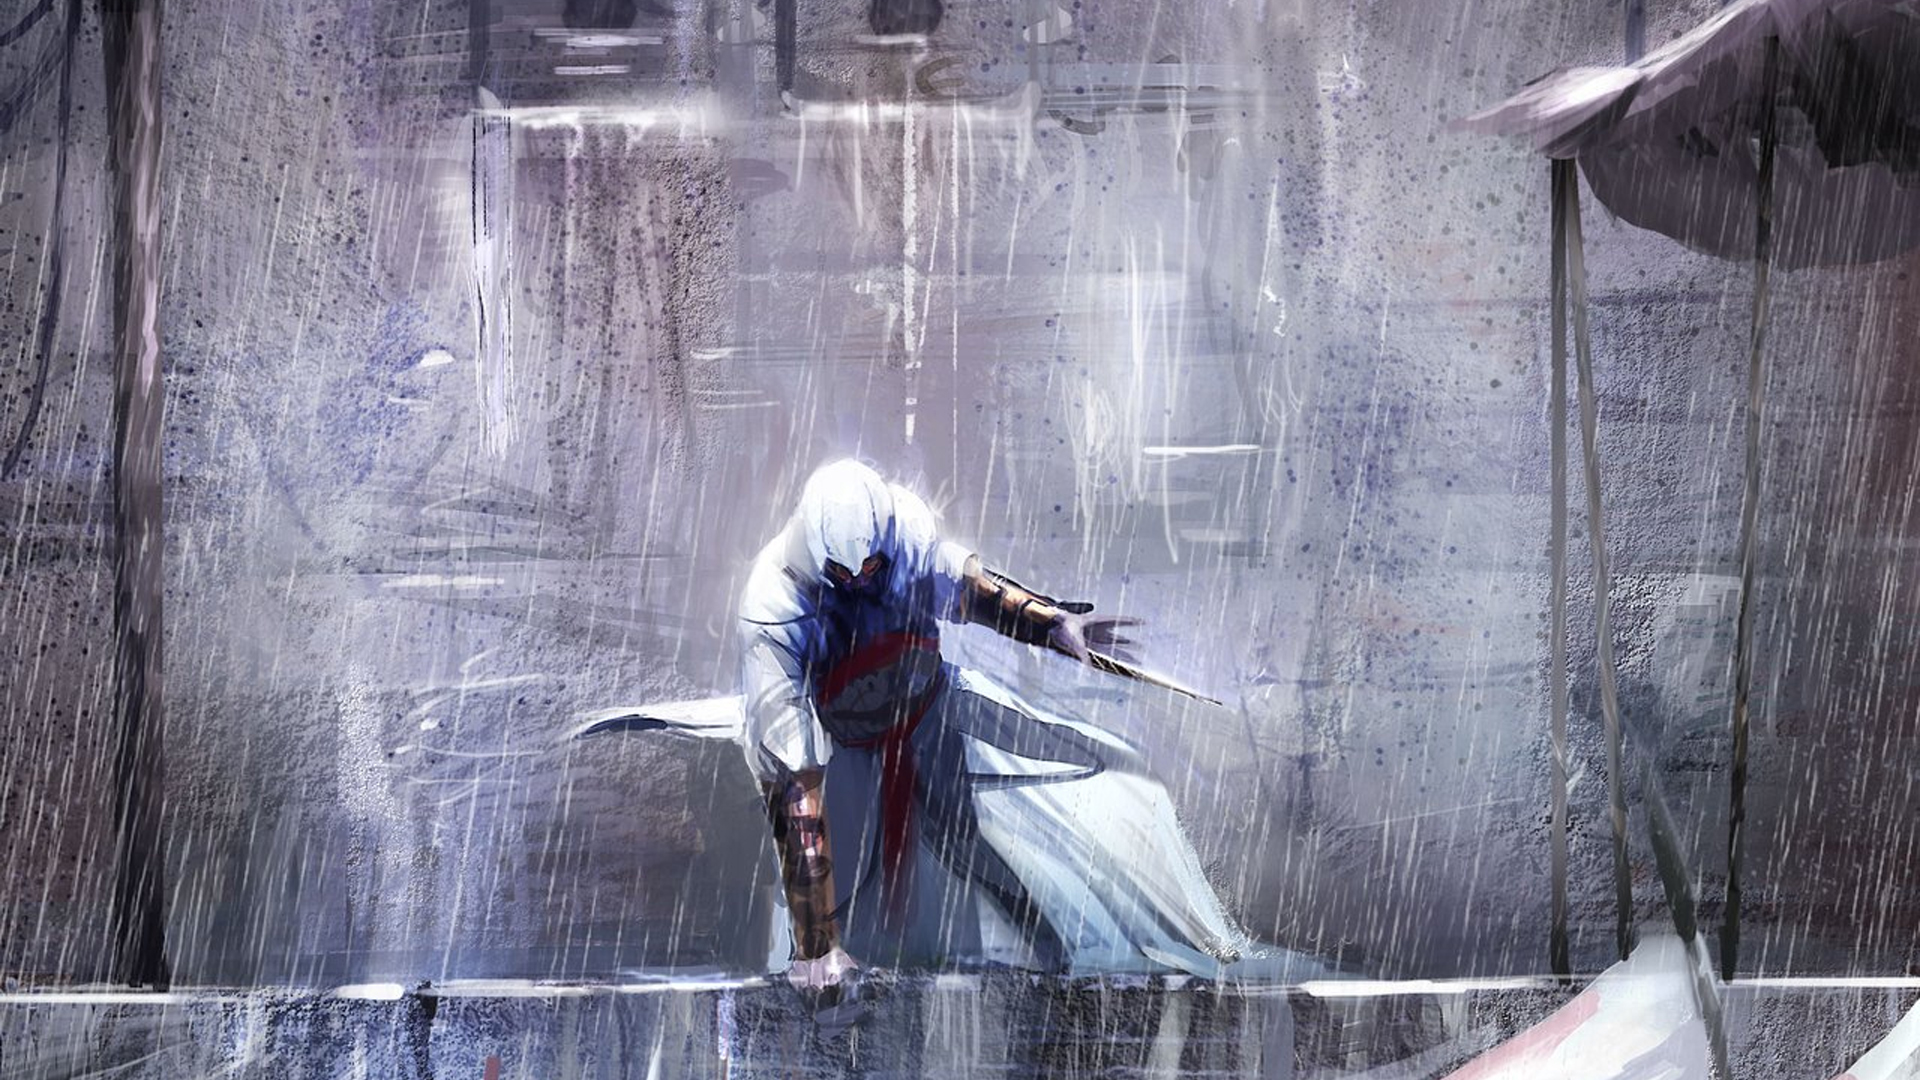 Assassins Creed Wallpaper Hd wallpaper   327642 1920x1080